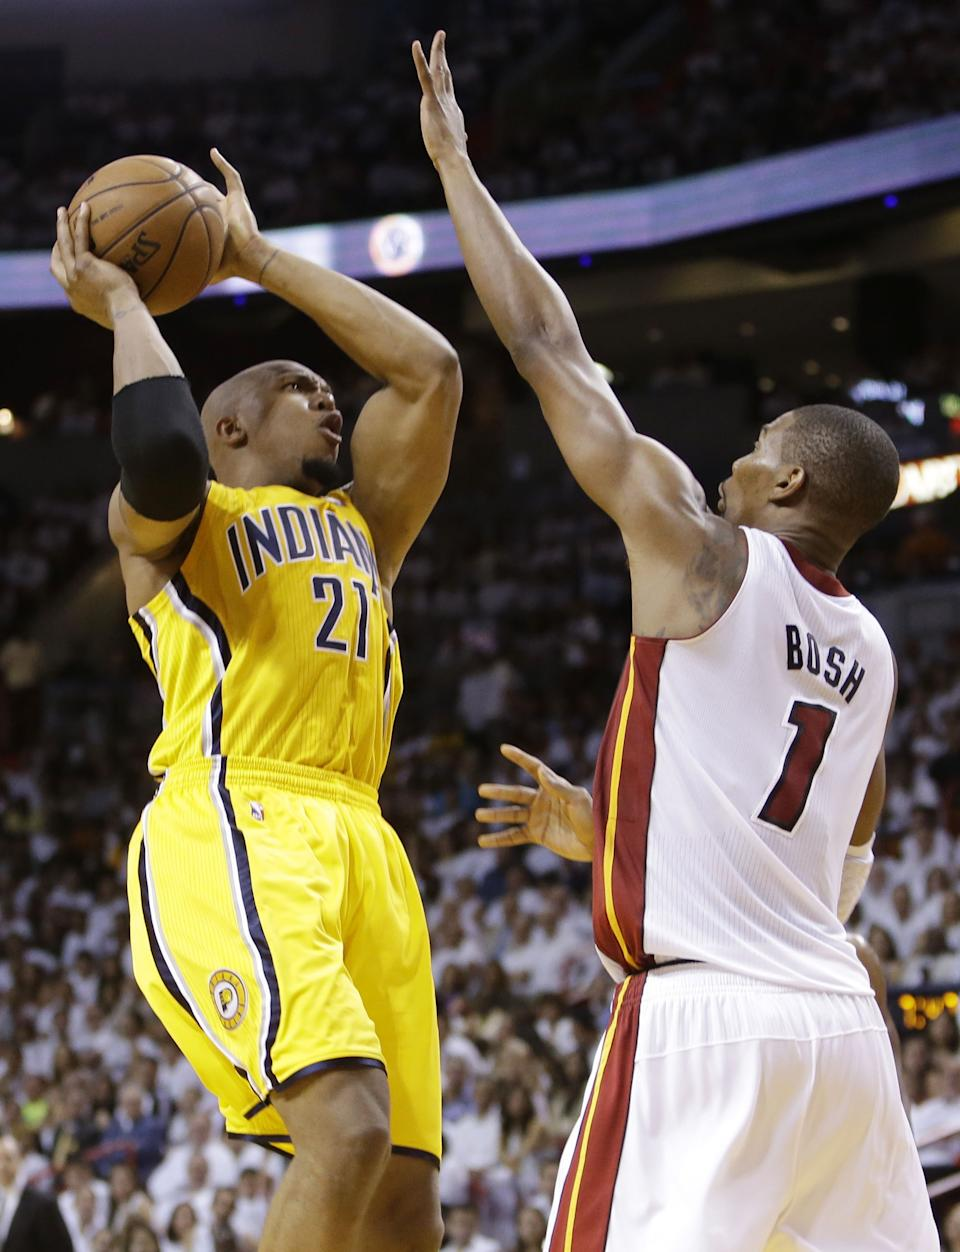 Indiana Pacer forward David West (21) drives to the basket as Miami Heat center Chris Bosh (1) defends during the first half of Game 2 in their NBA basketball Eastern Conference finals playoff series, Friday, May 24, 2013, in Miami. (AP Photo/Lynne Sladky)